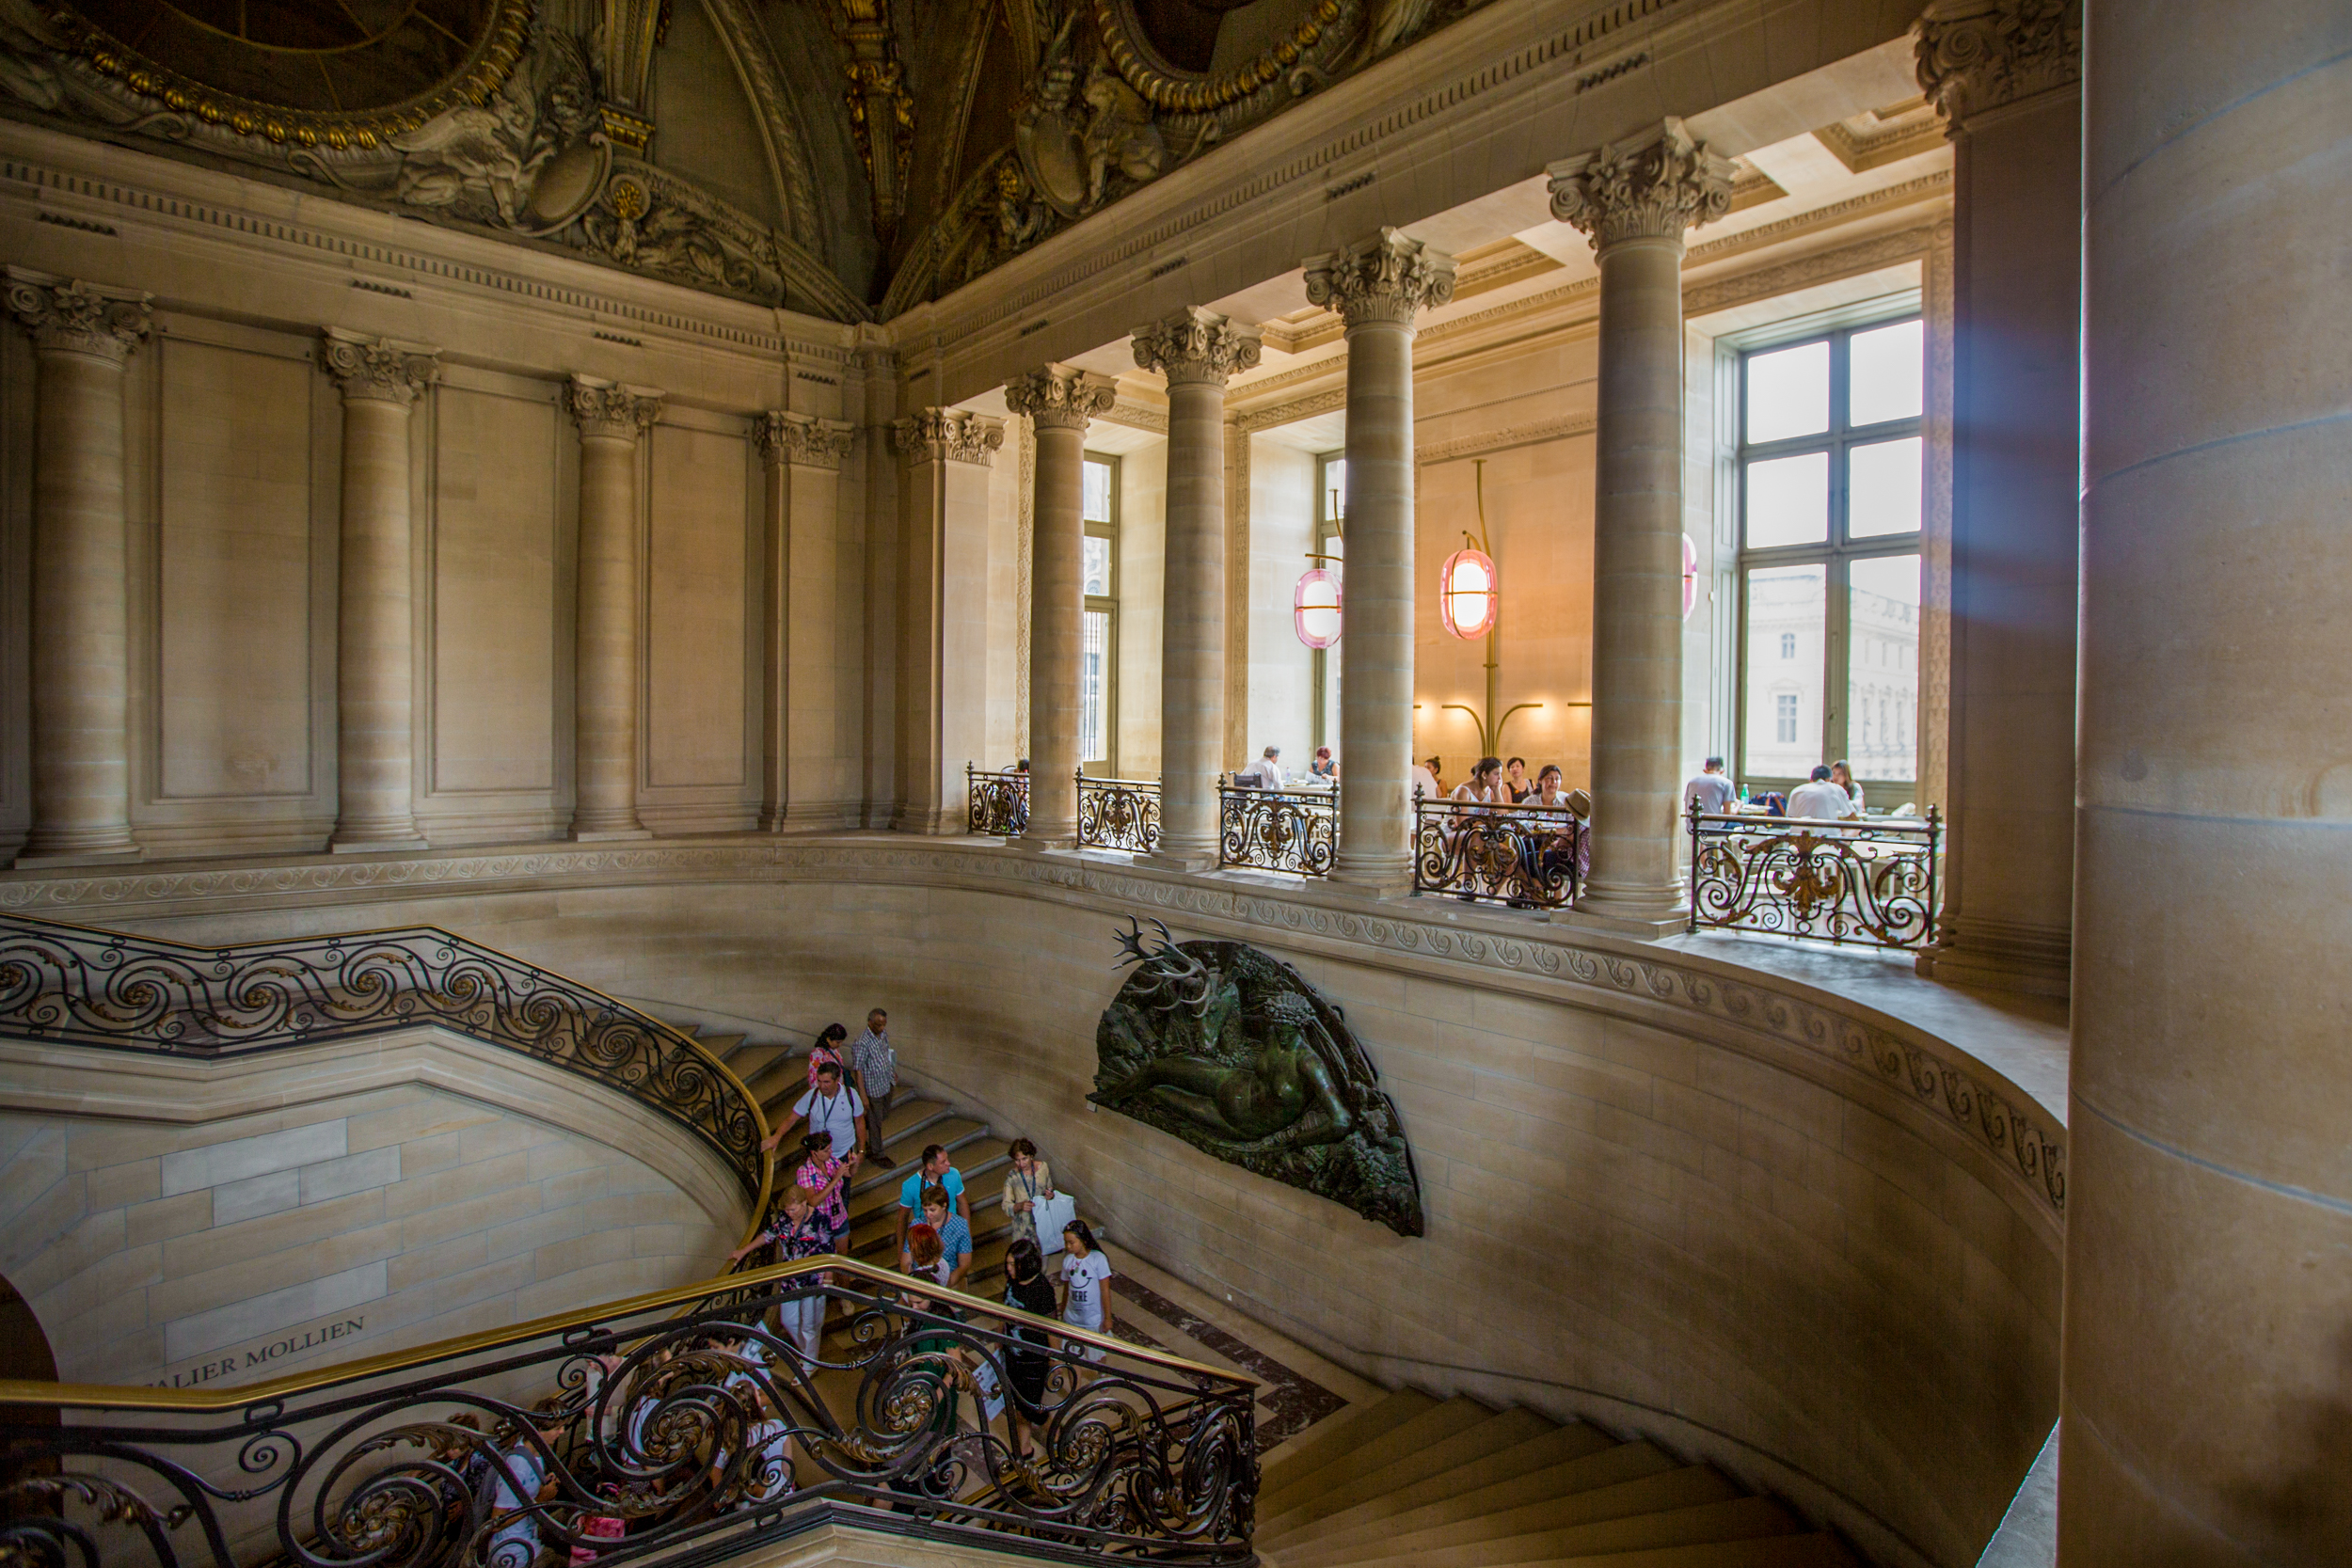 where to eat at the louvre - eater